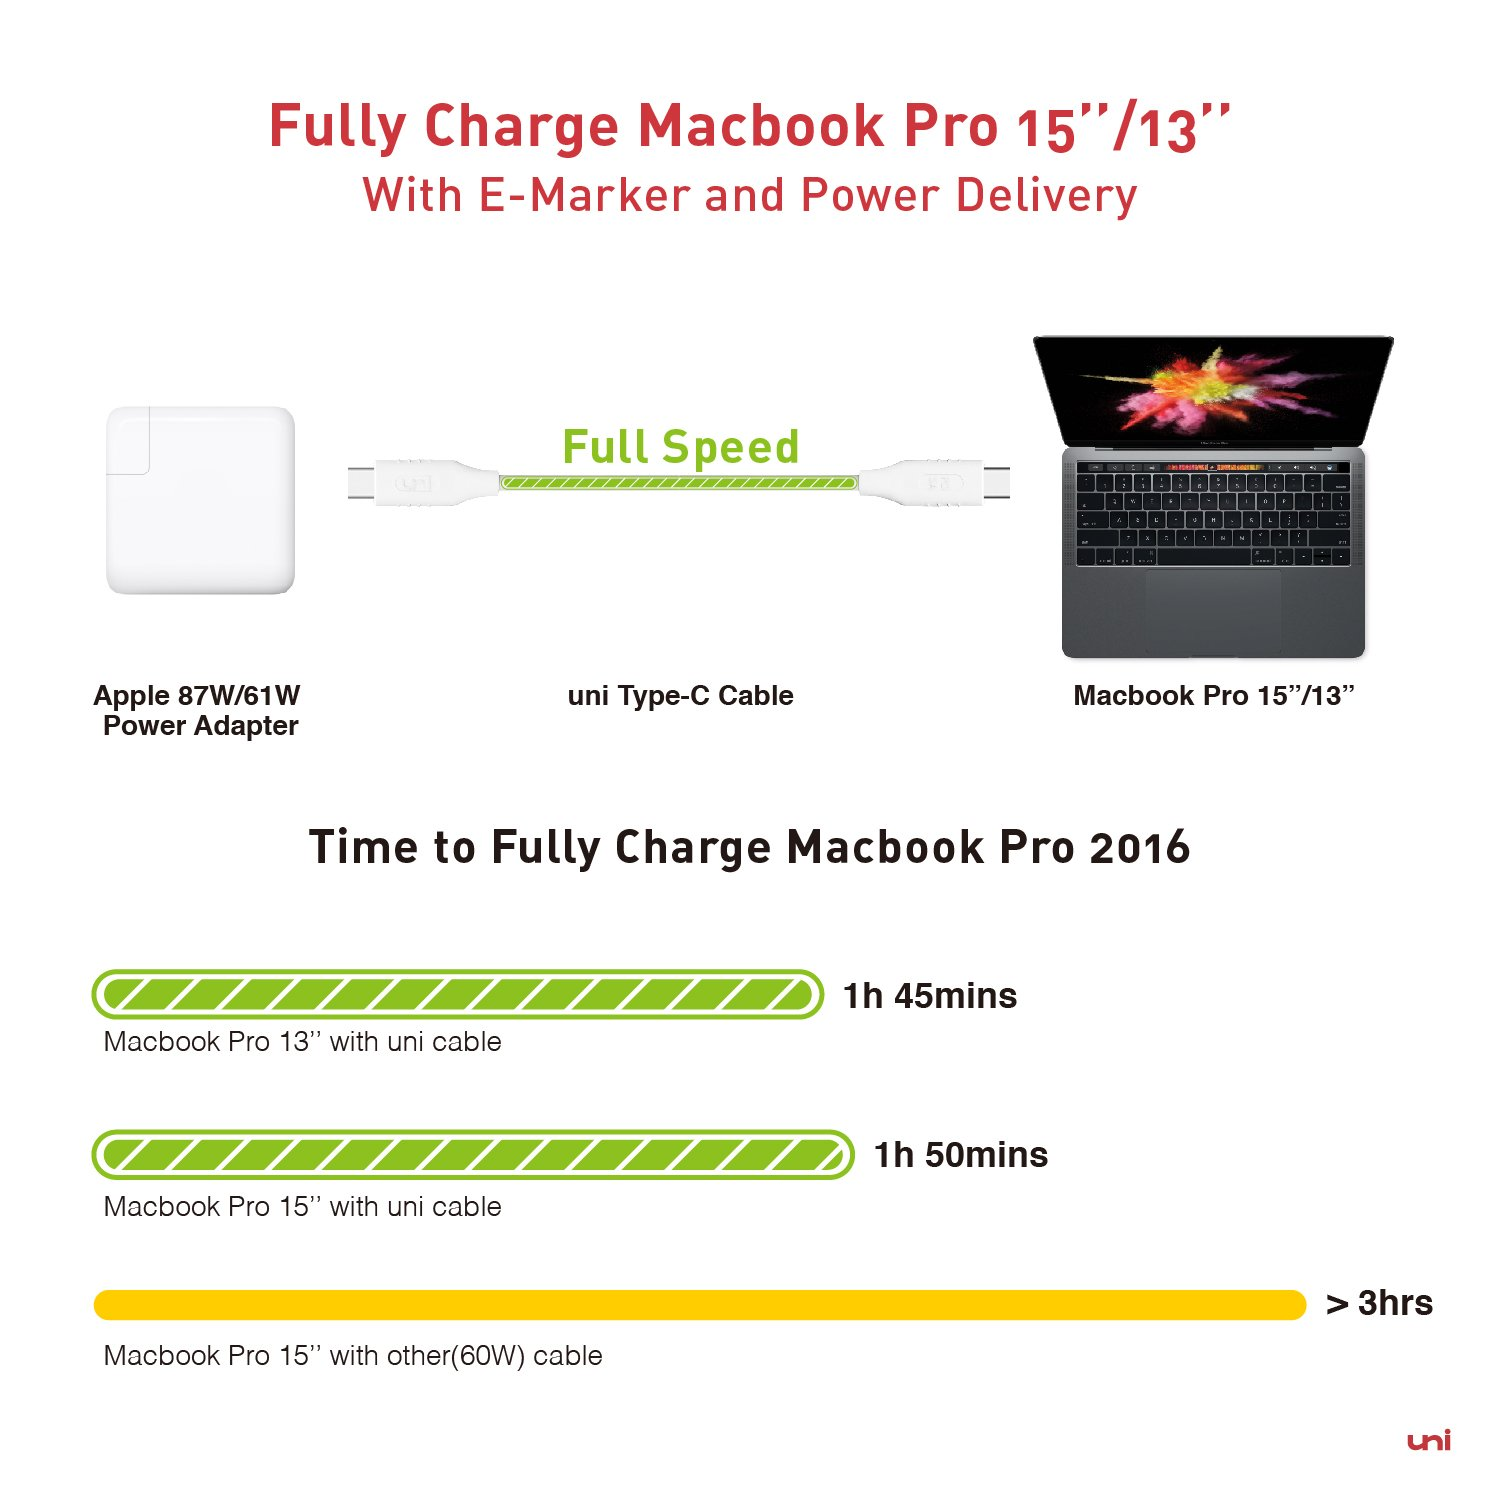 USB-C to USB-C Cable (10ft/3m) - uni USB-C Charge Cable [5A] for MacBook Pro 2018/2017/2016, MacBook 12'', Galaxy S9/S8 Plus, Pixelbook, Pixel, Pixel 2, Nexus 5X/6P and More (NOT for iPhone/iPad) by uni (Image #4)